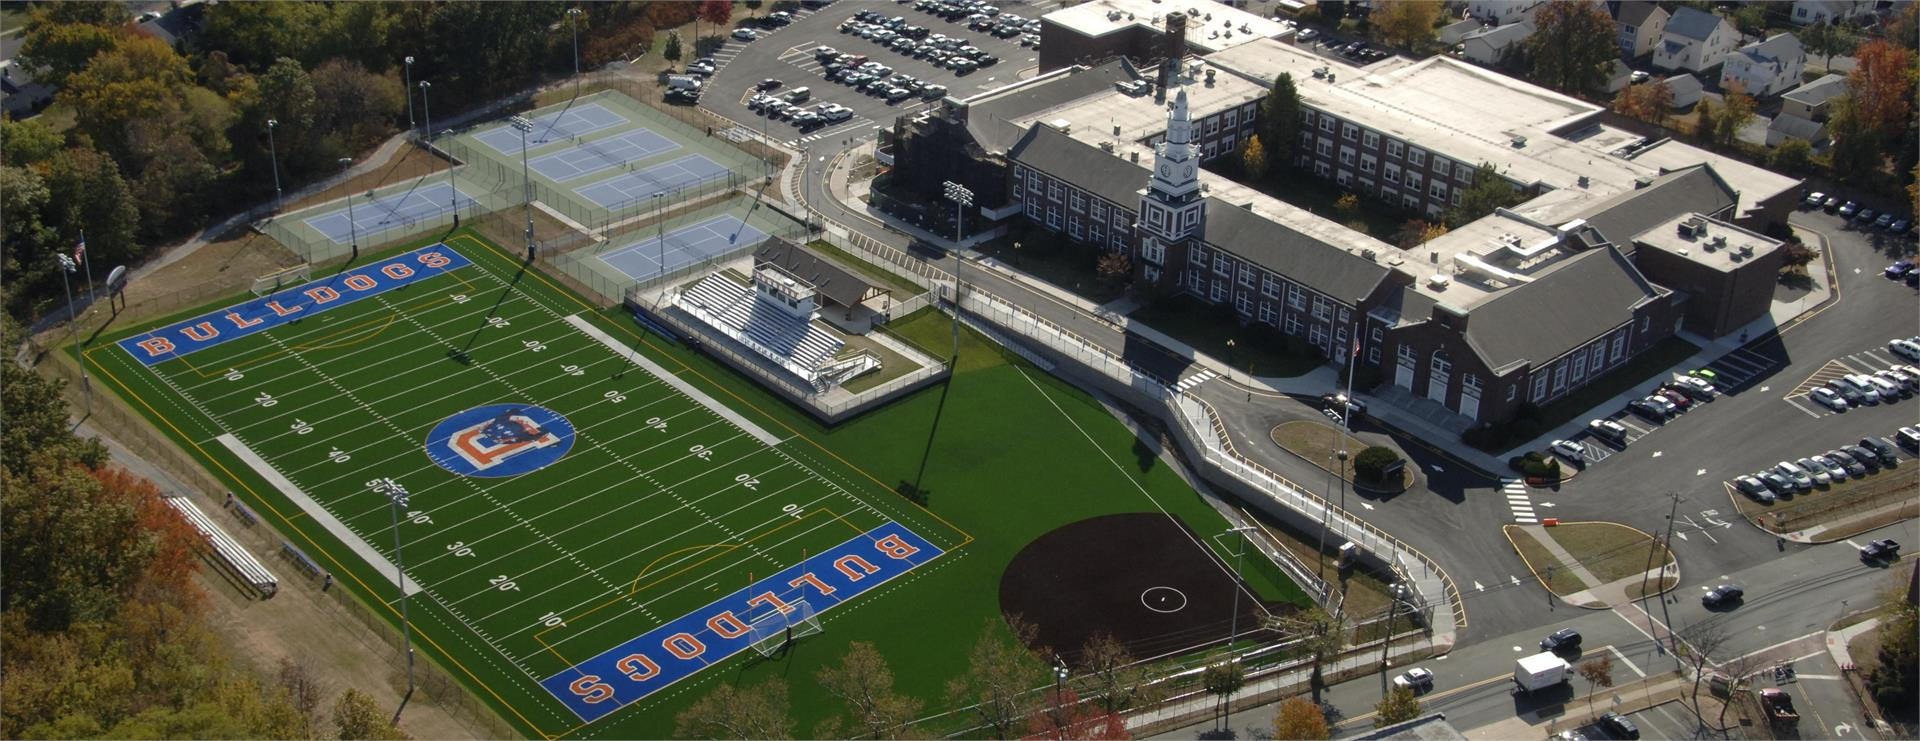 aerial picture of JDHS with football field